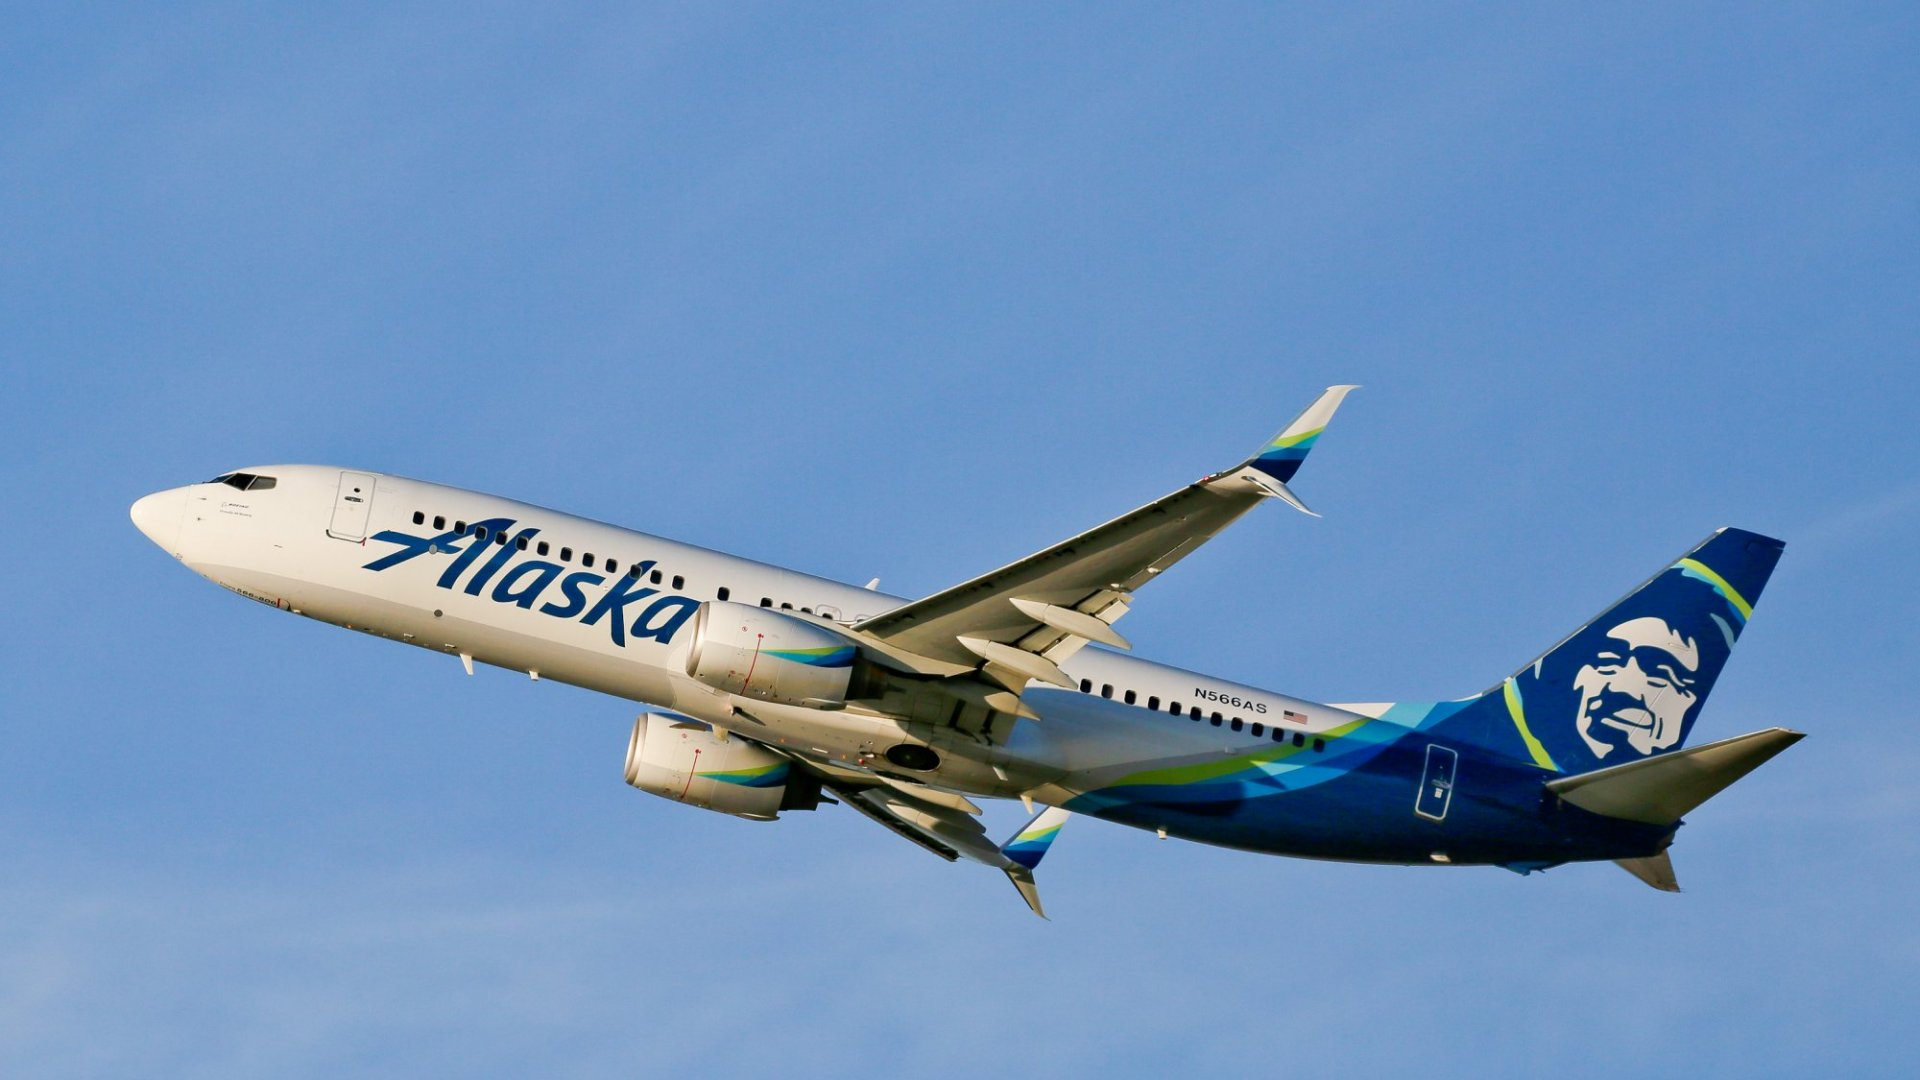 Alaska Airlines Starts Taking Things Away From Passengers (Oh, But Why This?)